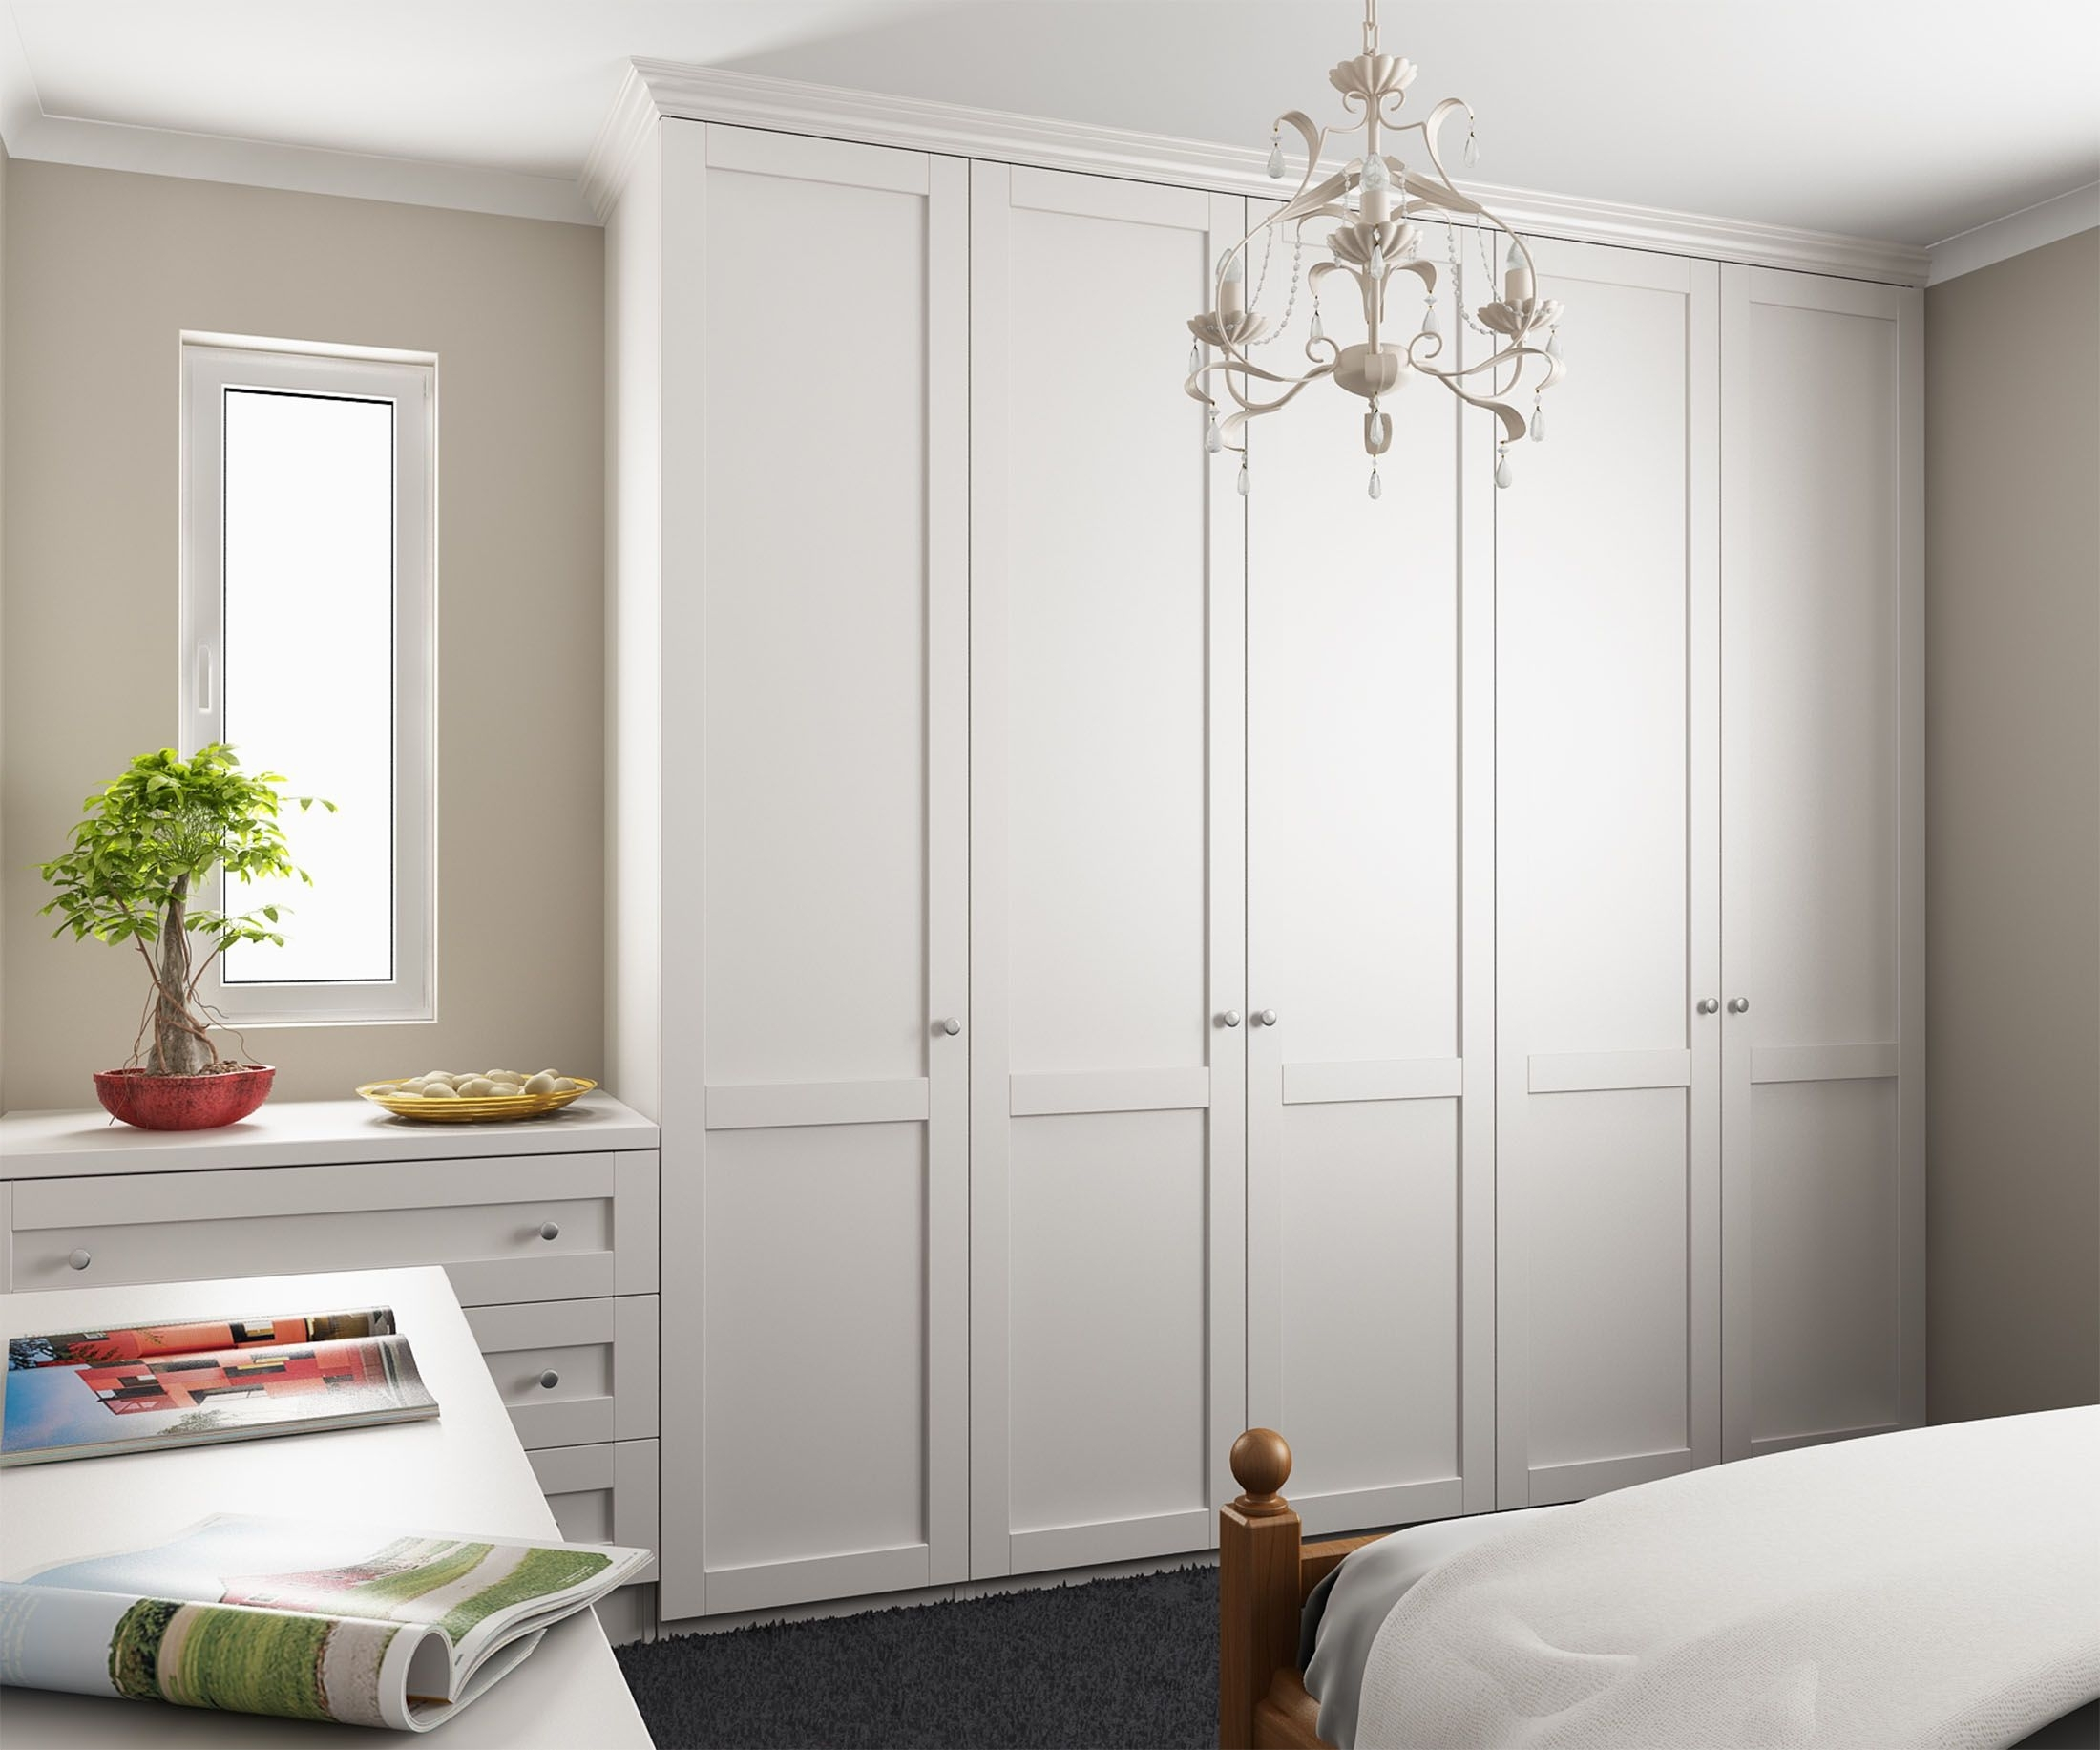 Widely Used Tall White Wardrobes For Tall Wardrobes Along Left Wall, Dressing Table/drawers With Mirror (View 14 of 15)